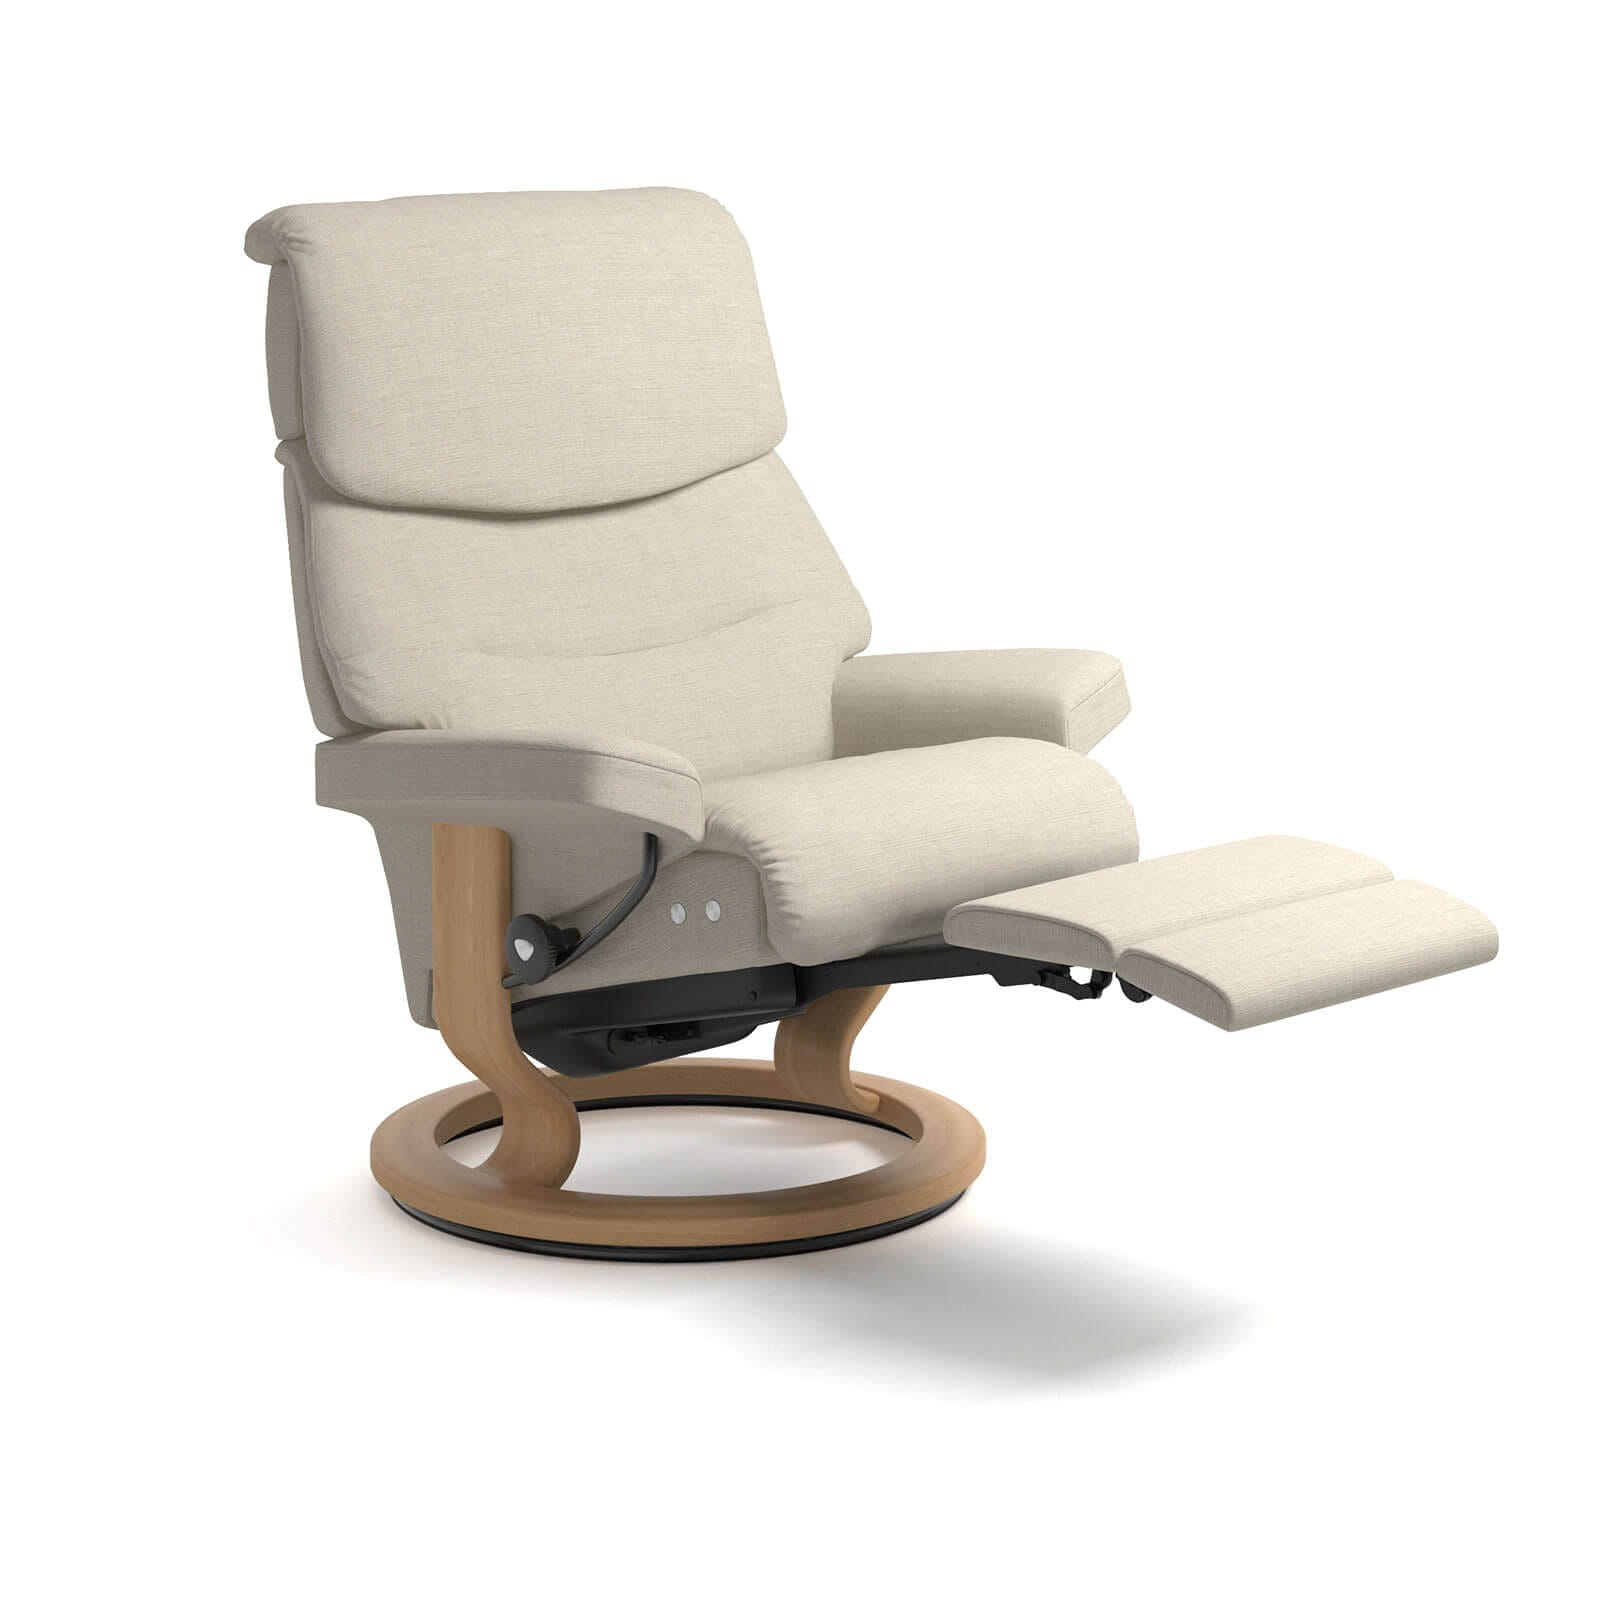 Stressless Sessel Stoff Stressless Legcomfort Stoff Silva Light Beige Stressless